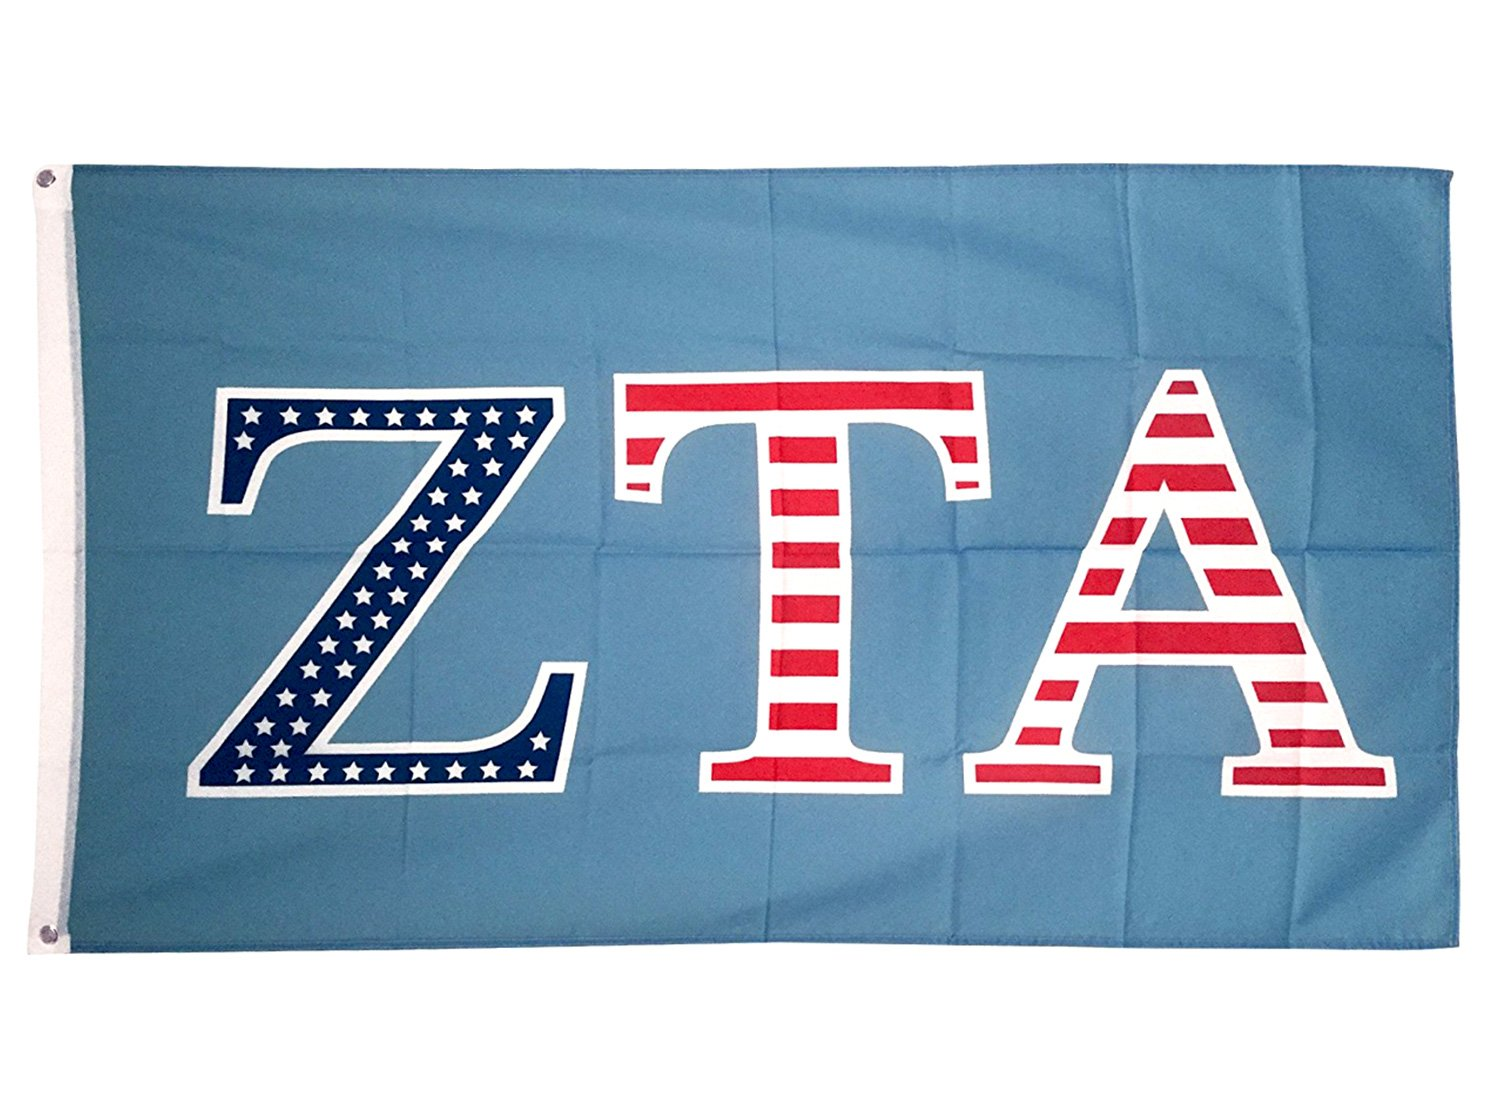 Zeta Tau Alpha ZTA USA Letter Sorority Flag Greek Letter Use as a Banner Large 3 x 5 Feet Sign Decor Zeta by Desert Cactus